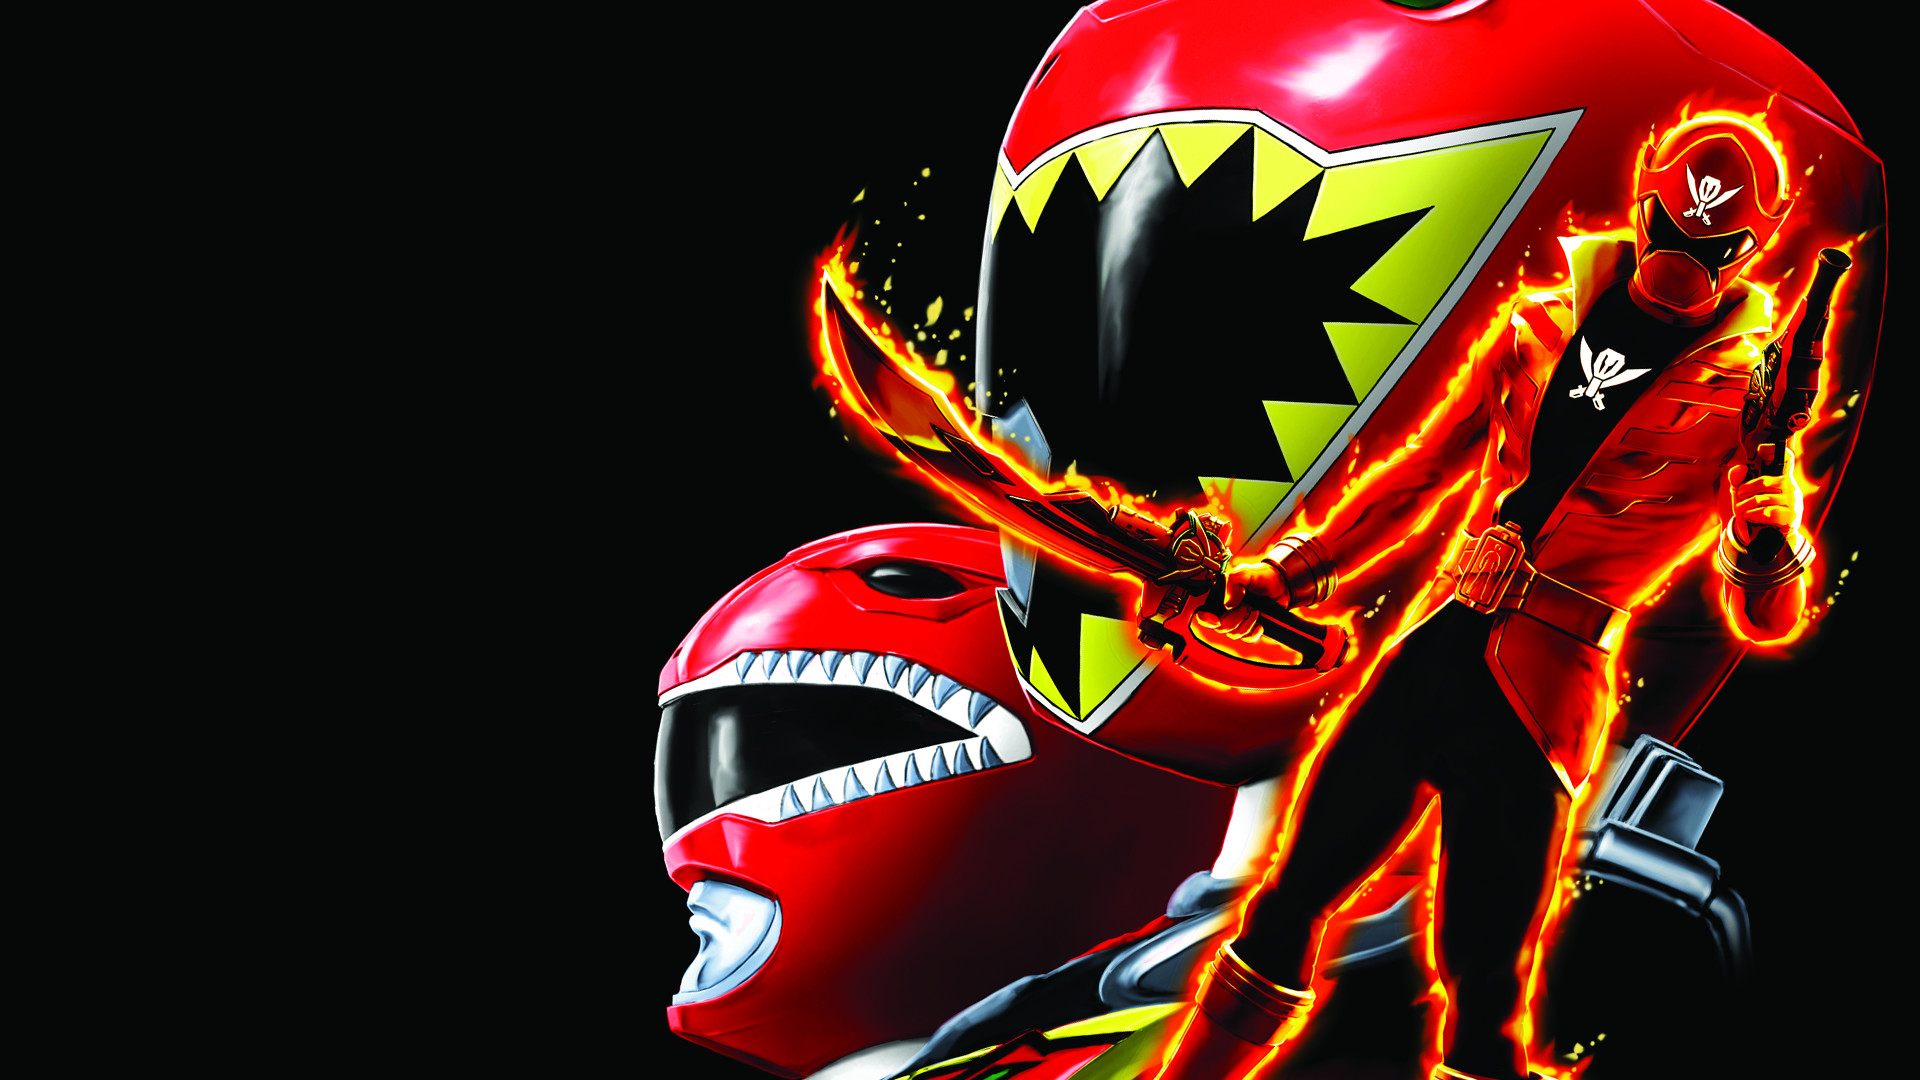 Power Rangers Dino Charge Wallpaper (83+ images)